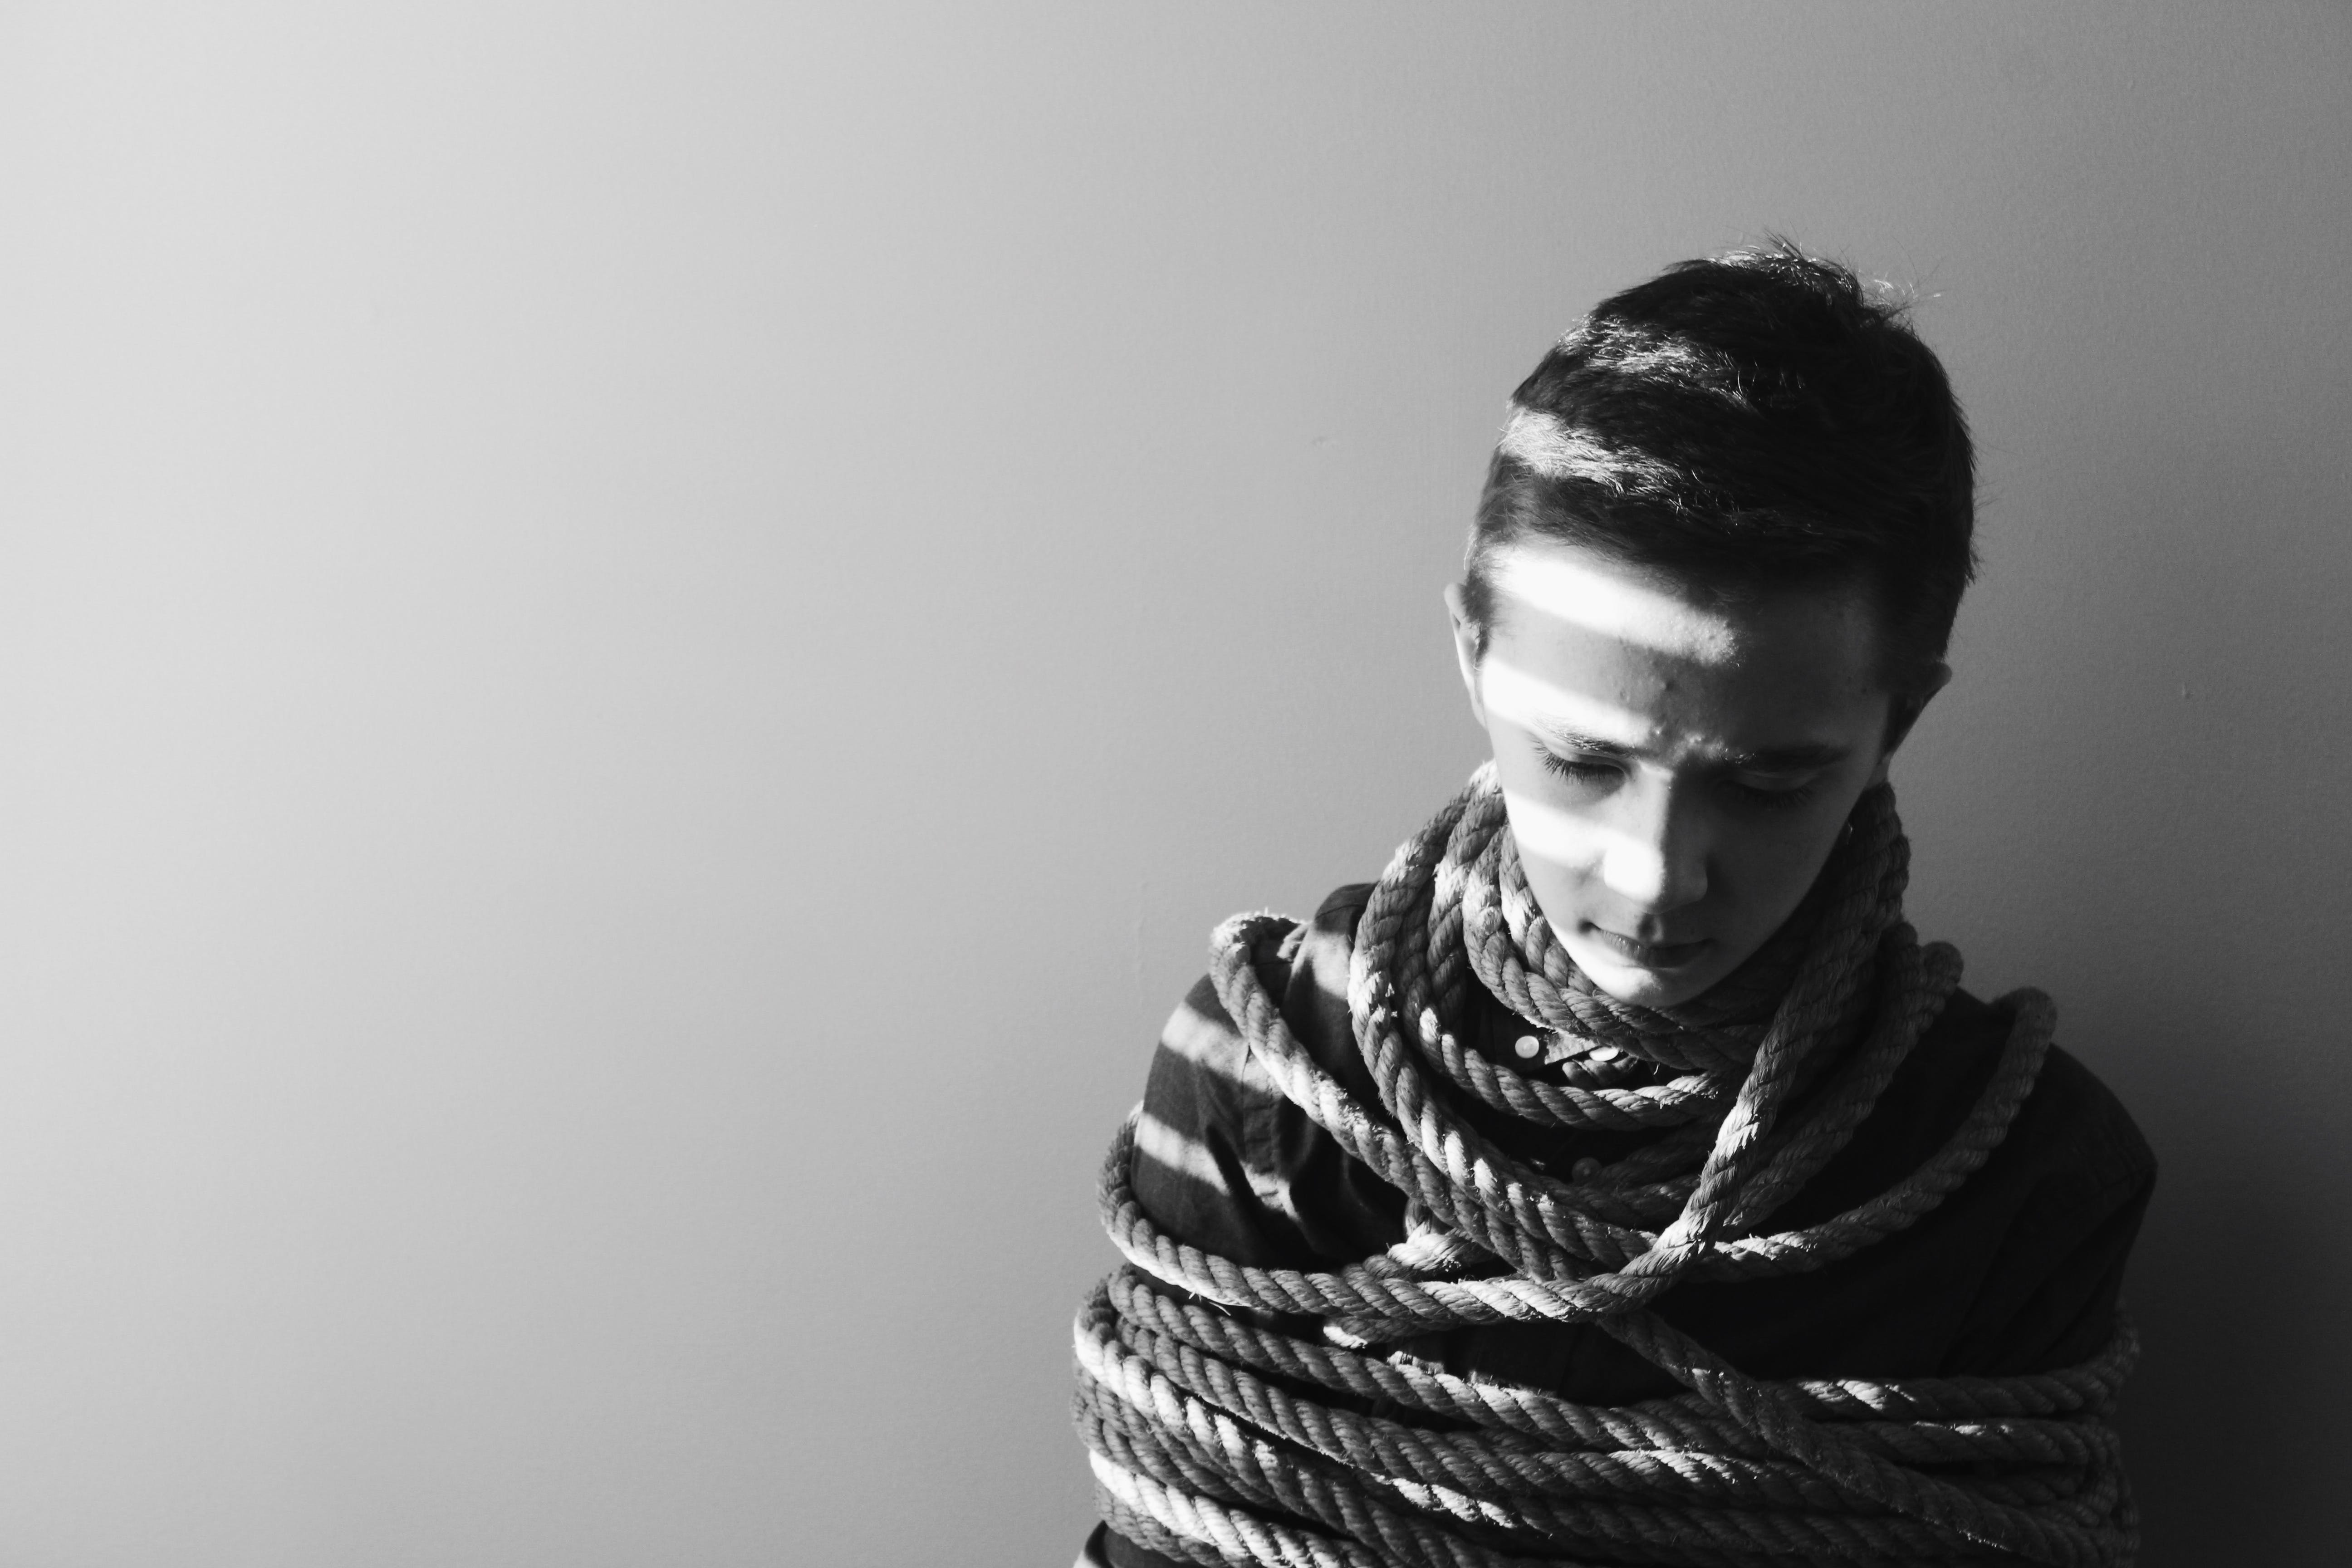 Grayscale Photography of Person Bind in Rope